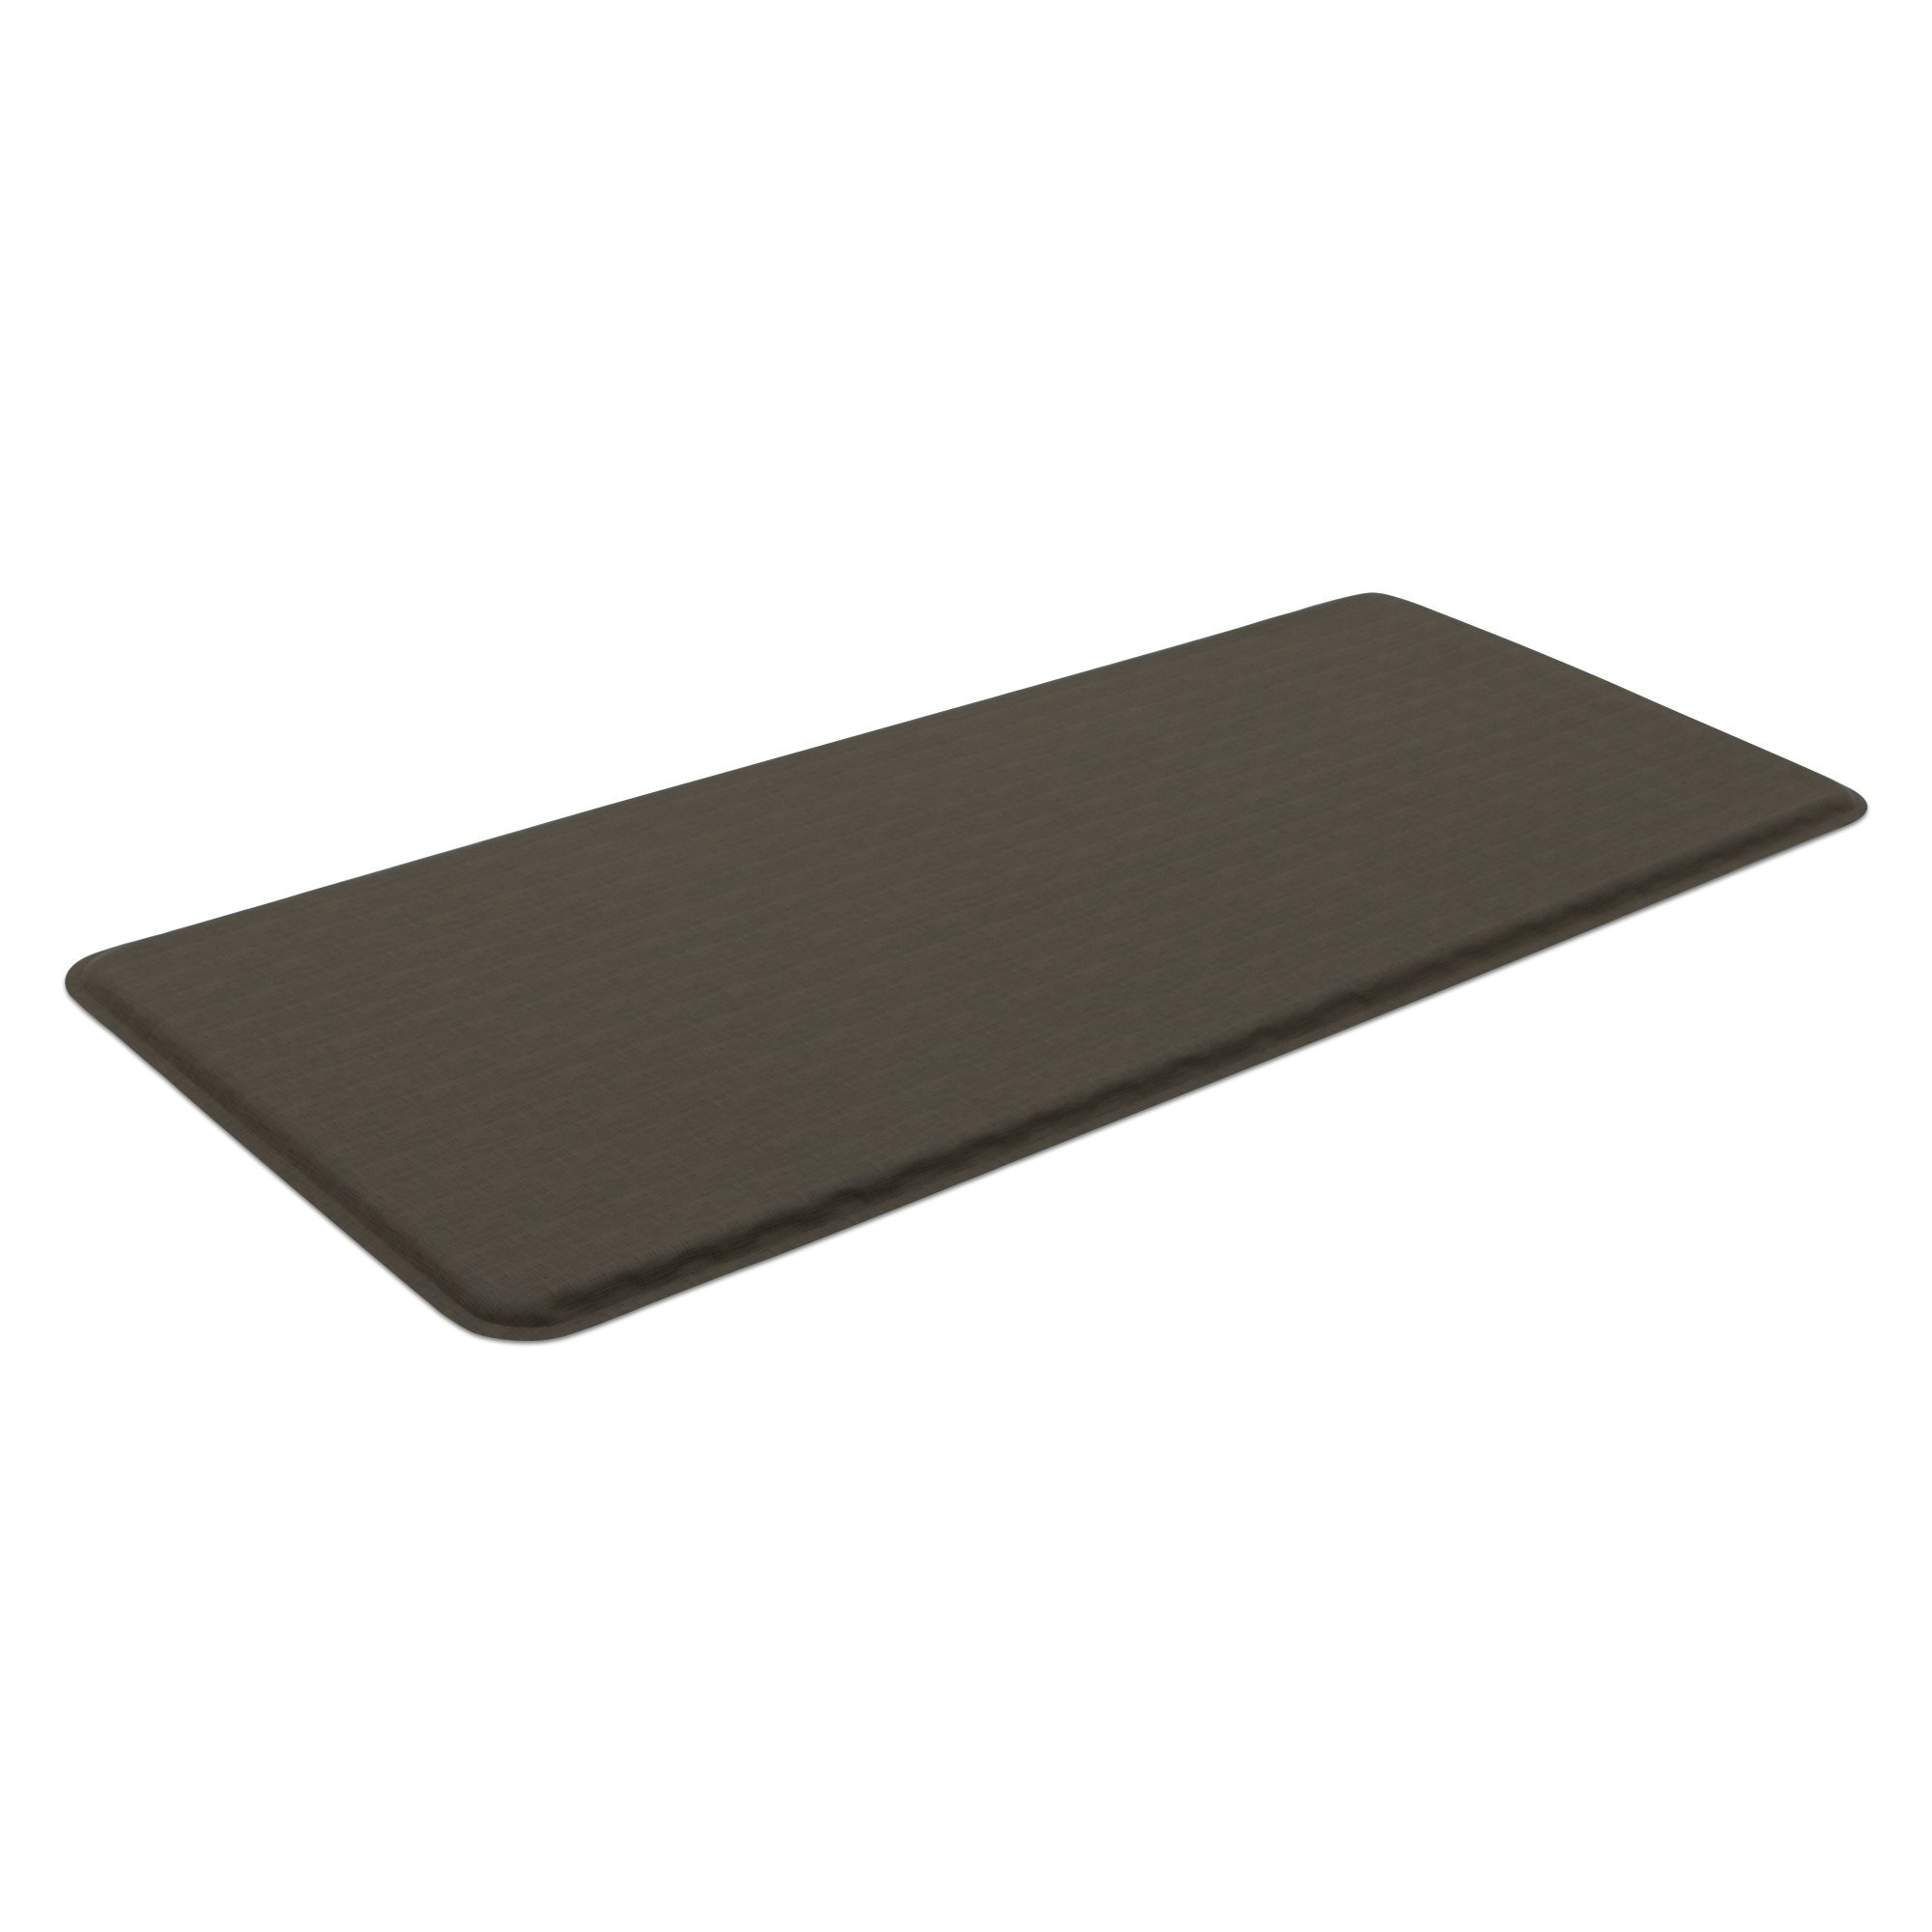 "GelPro Classic Anti-Fatigue Kitchen Comfort Chef Floor Mat, 20x48"", Linen Granite Gray Stain Resistant Surface with 1/2"" Gel Core for Health and Wellness by GelPro (Image #2)"